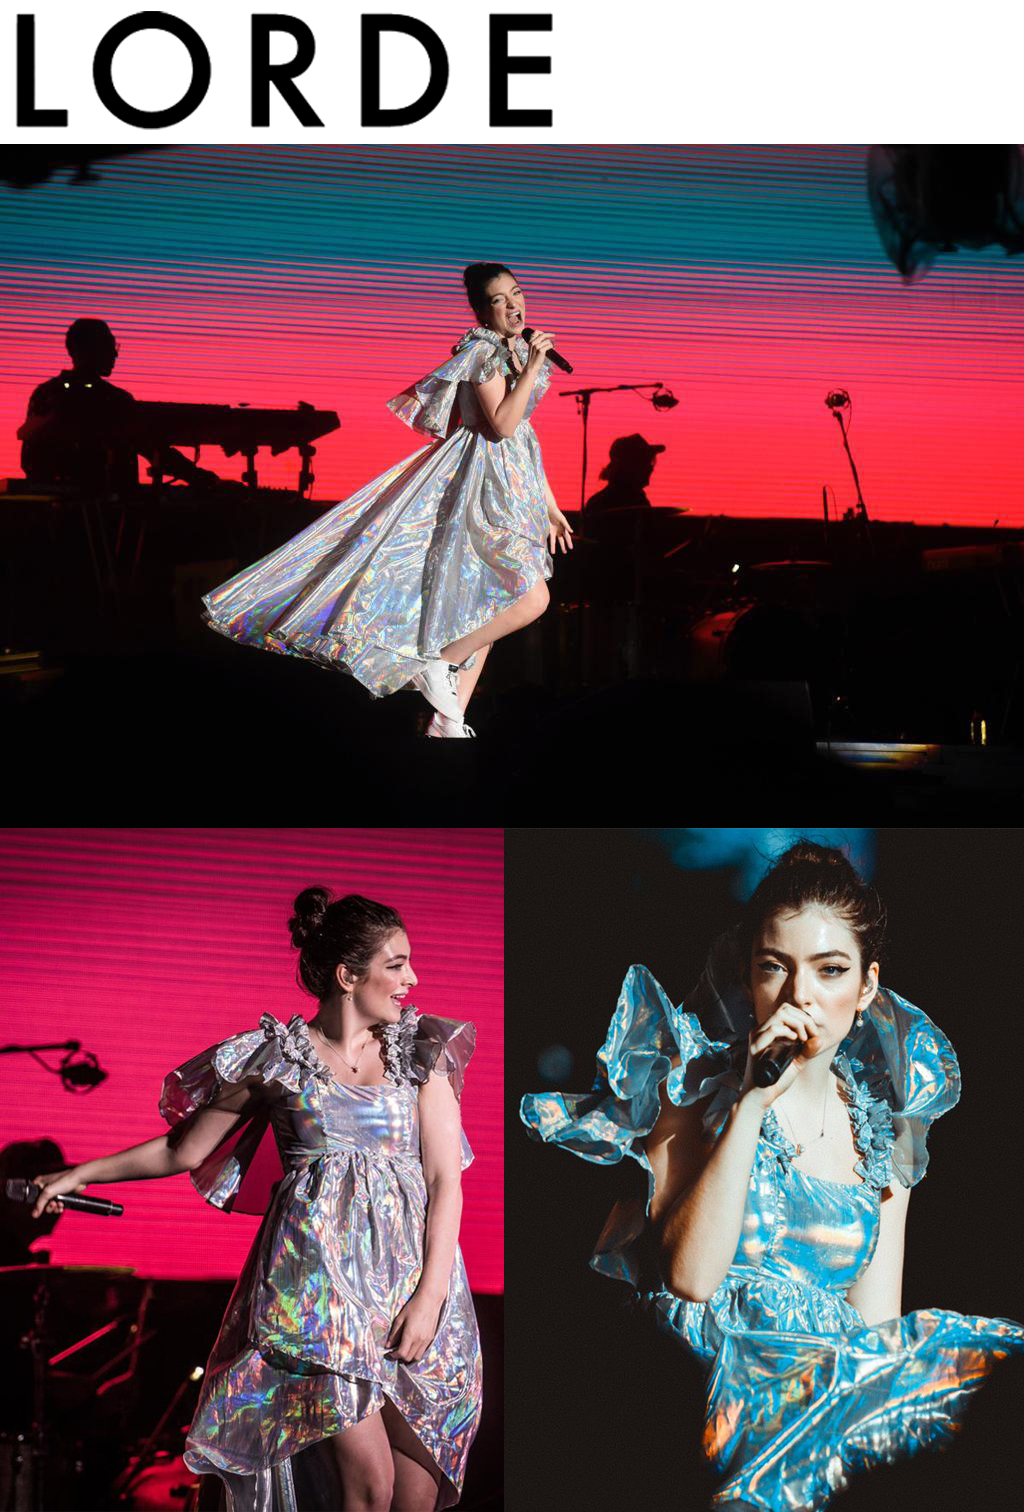 Lorde personal music festival buenos aires argentina styled by karla welch wearing Kelsey Randall holographic ruffle cape back angel gown high-low dress